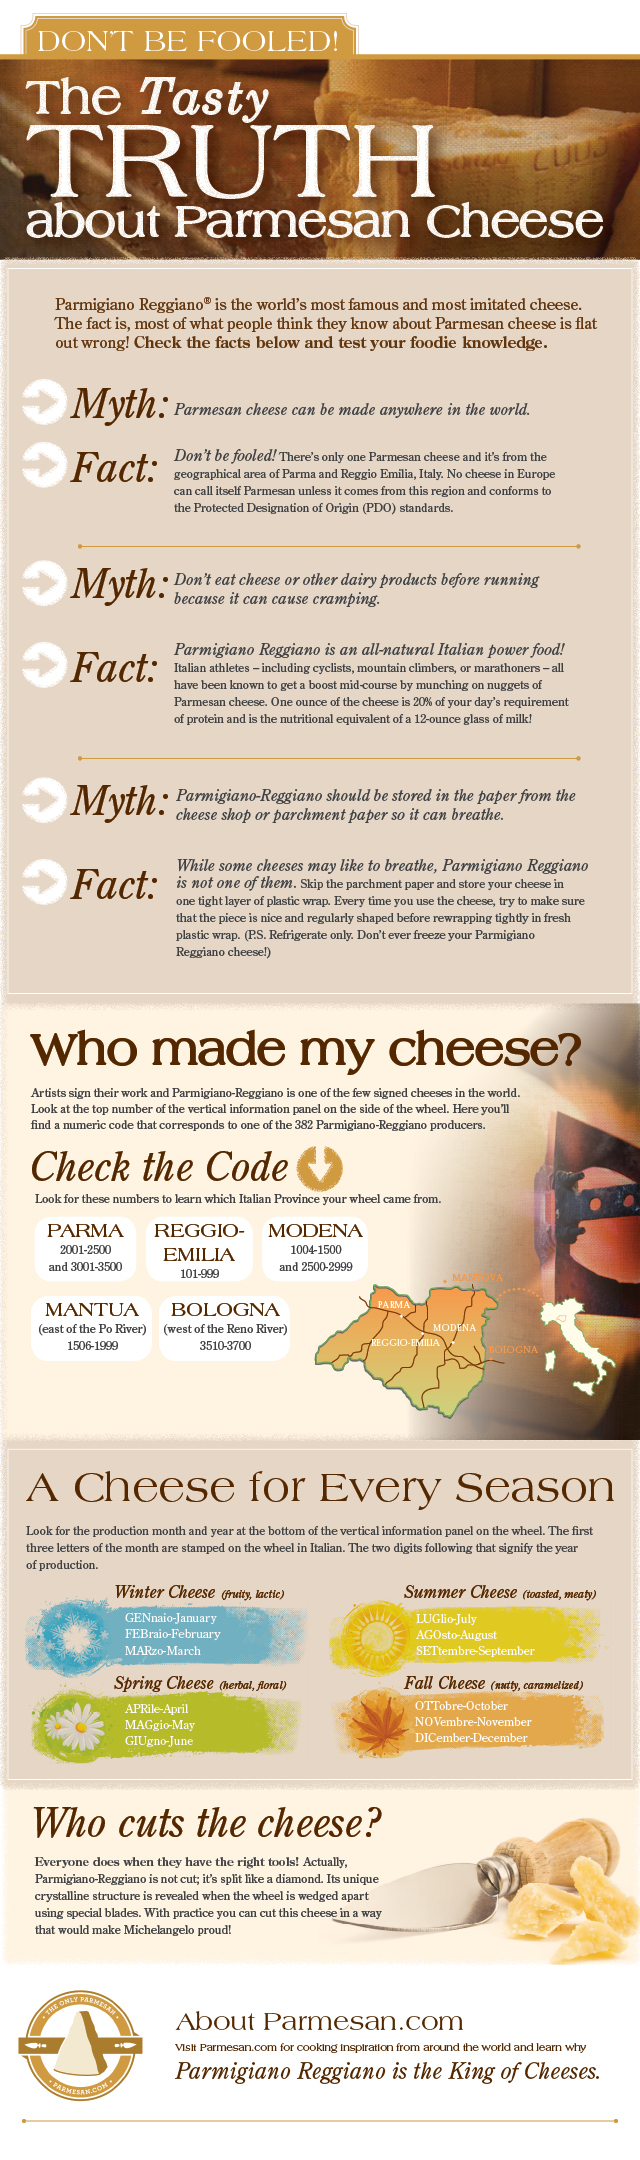 Don't Be Fooled! The Tasty Truth About Parmesan Cheese